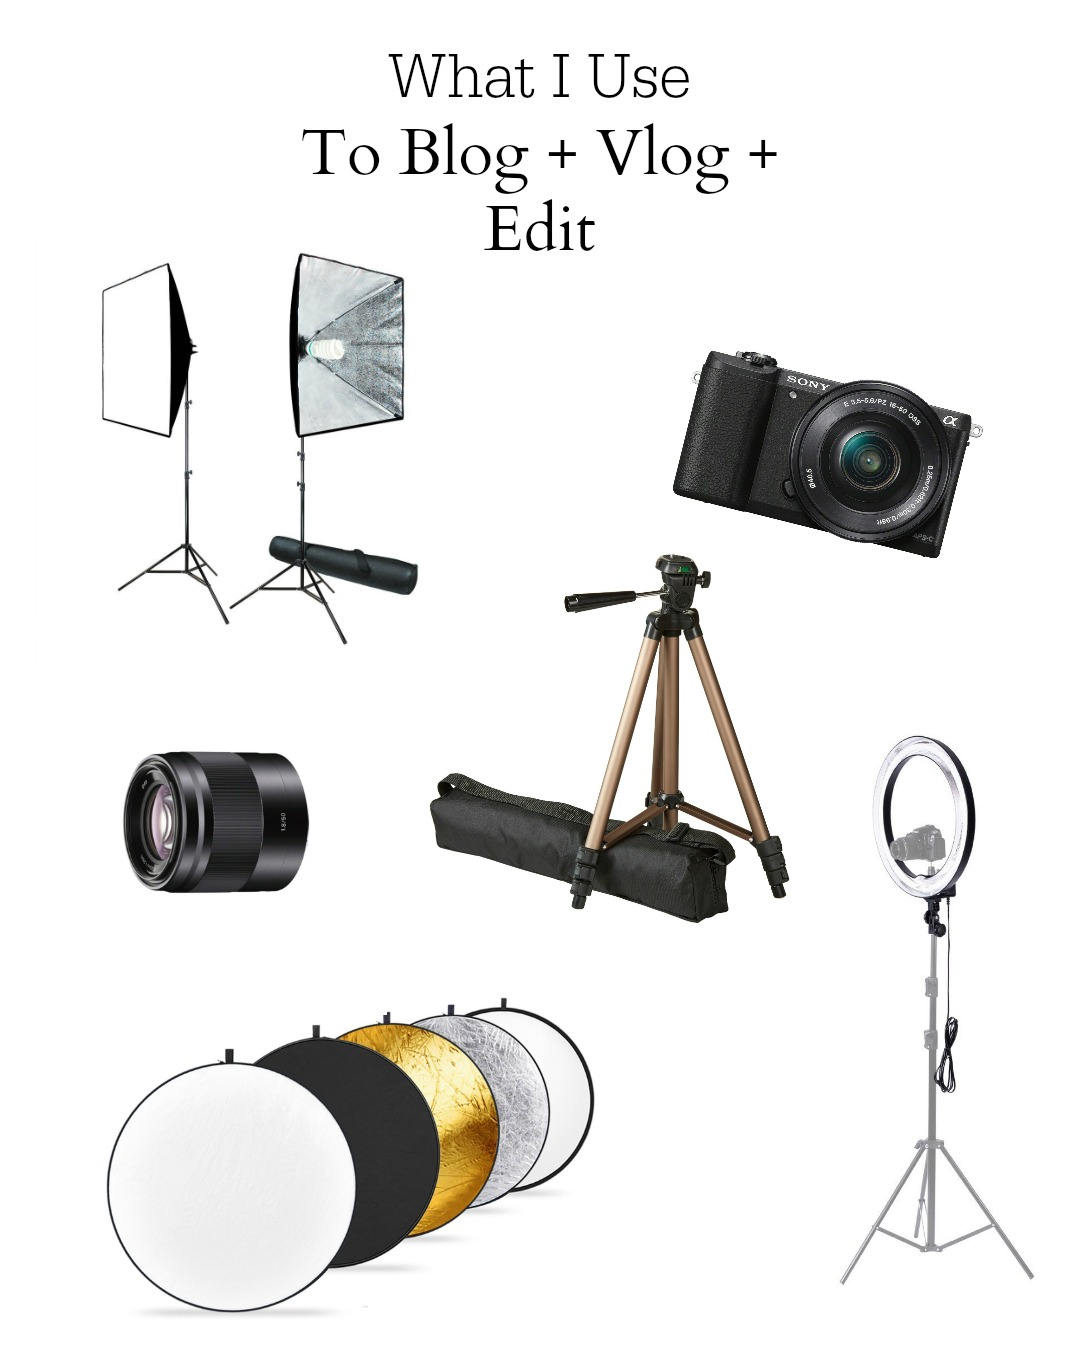 What I Use to Blog + Vlog + Edit